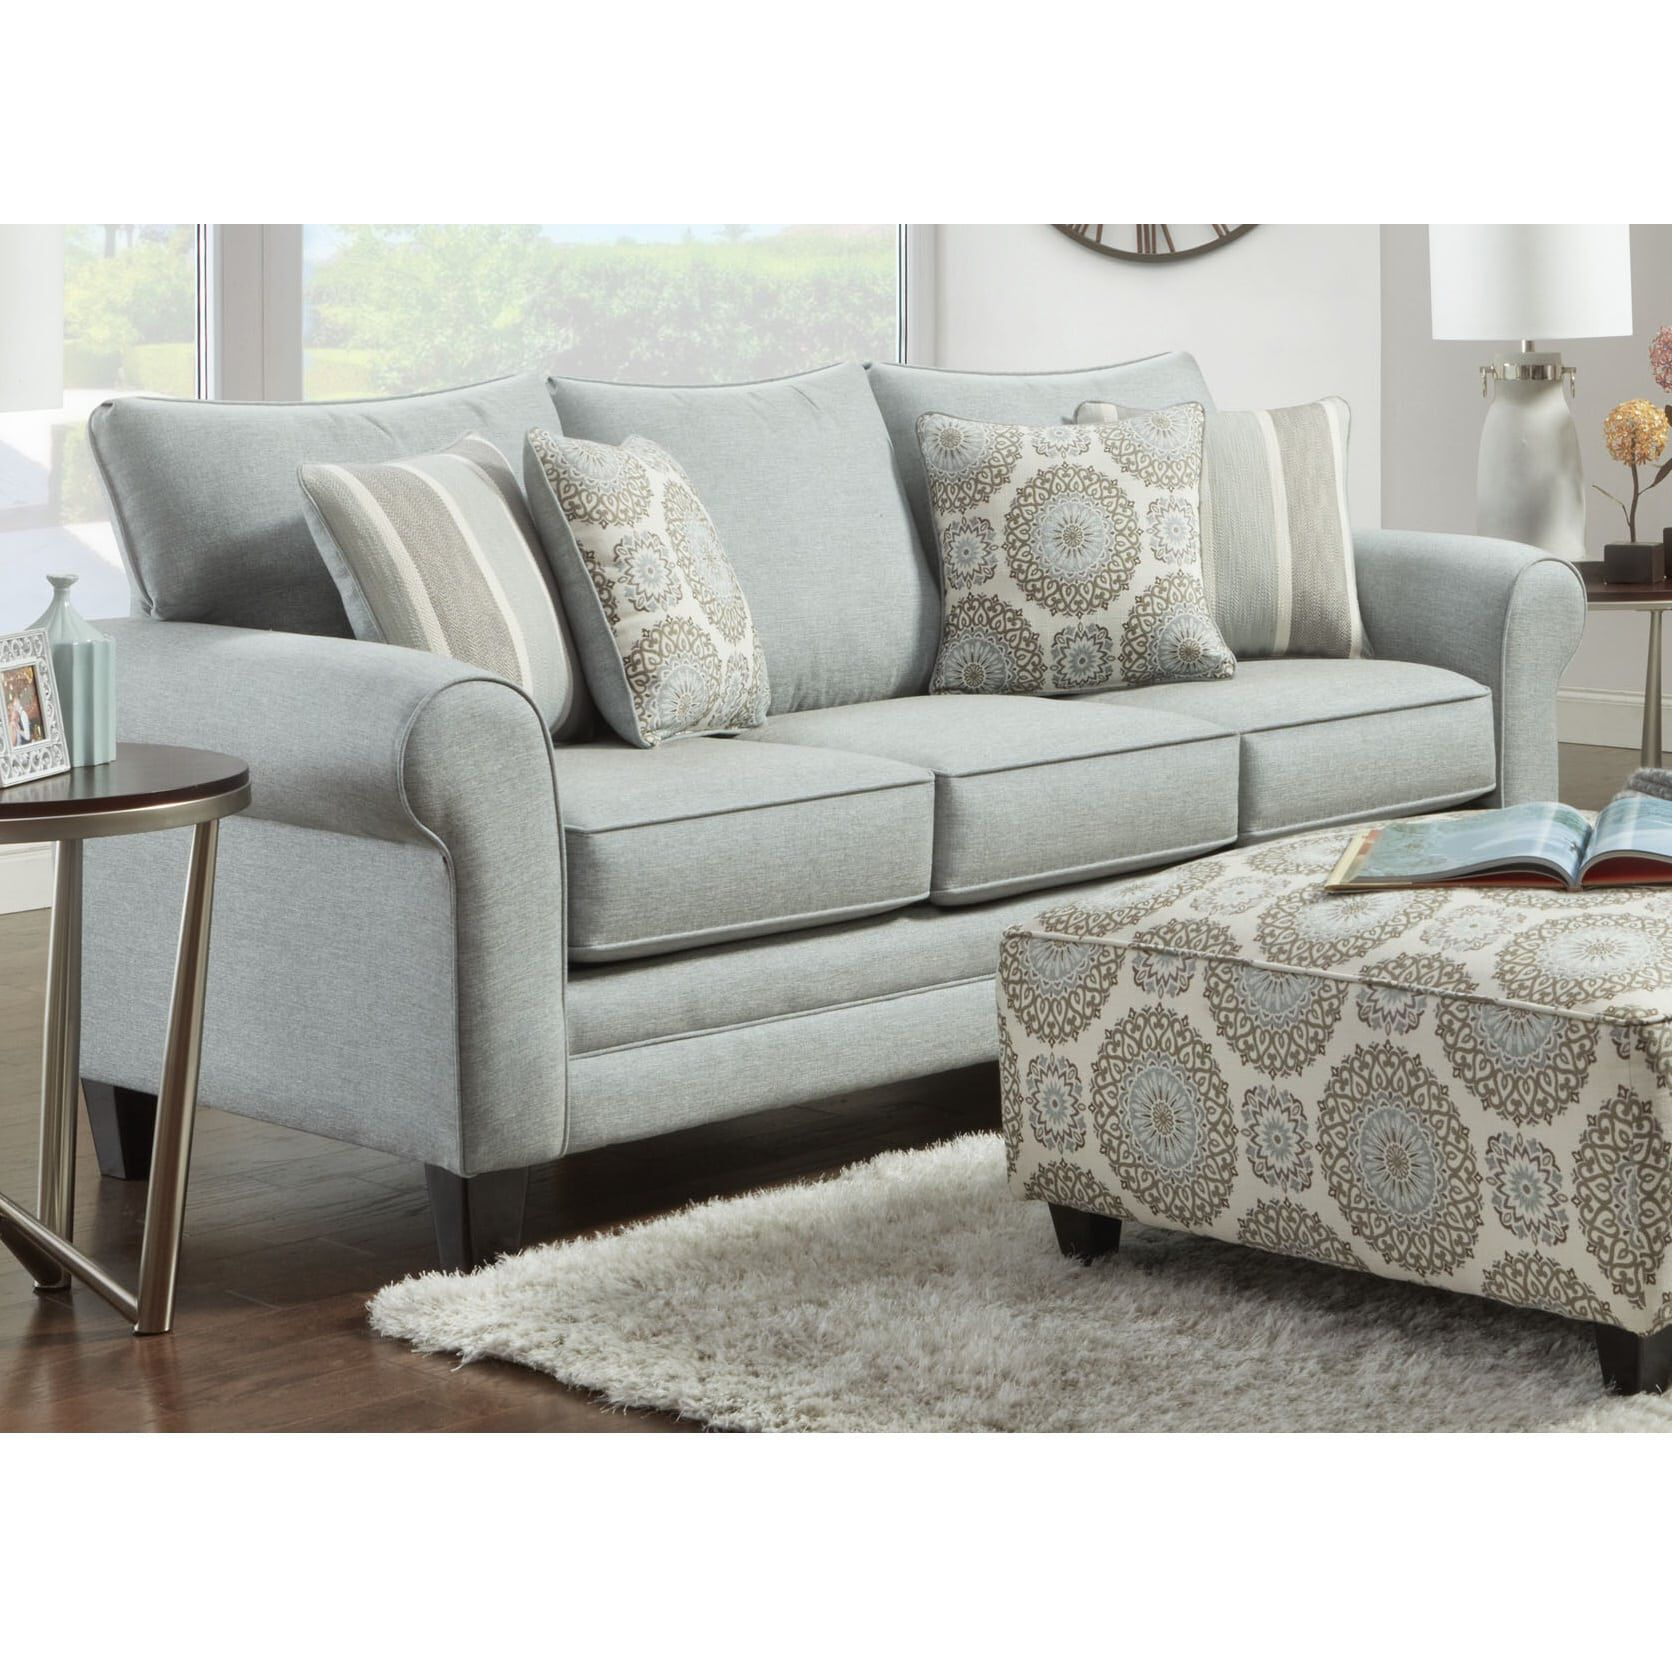 3 piece lara living room collection with loveseat